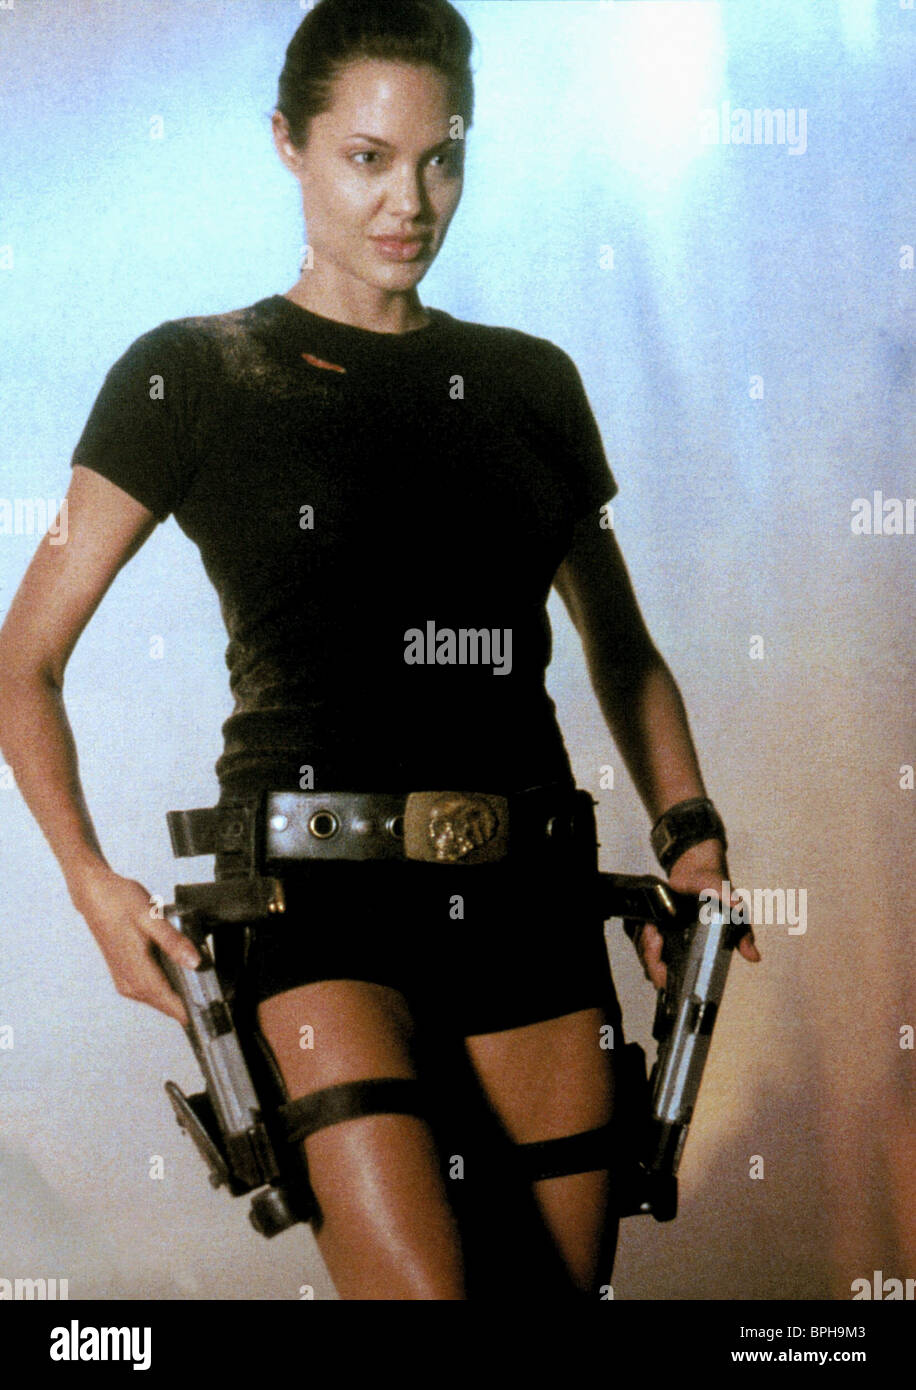 Angelina Jolie Lara Croft Tomb Raider 2001 Stockfoto Bild